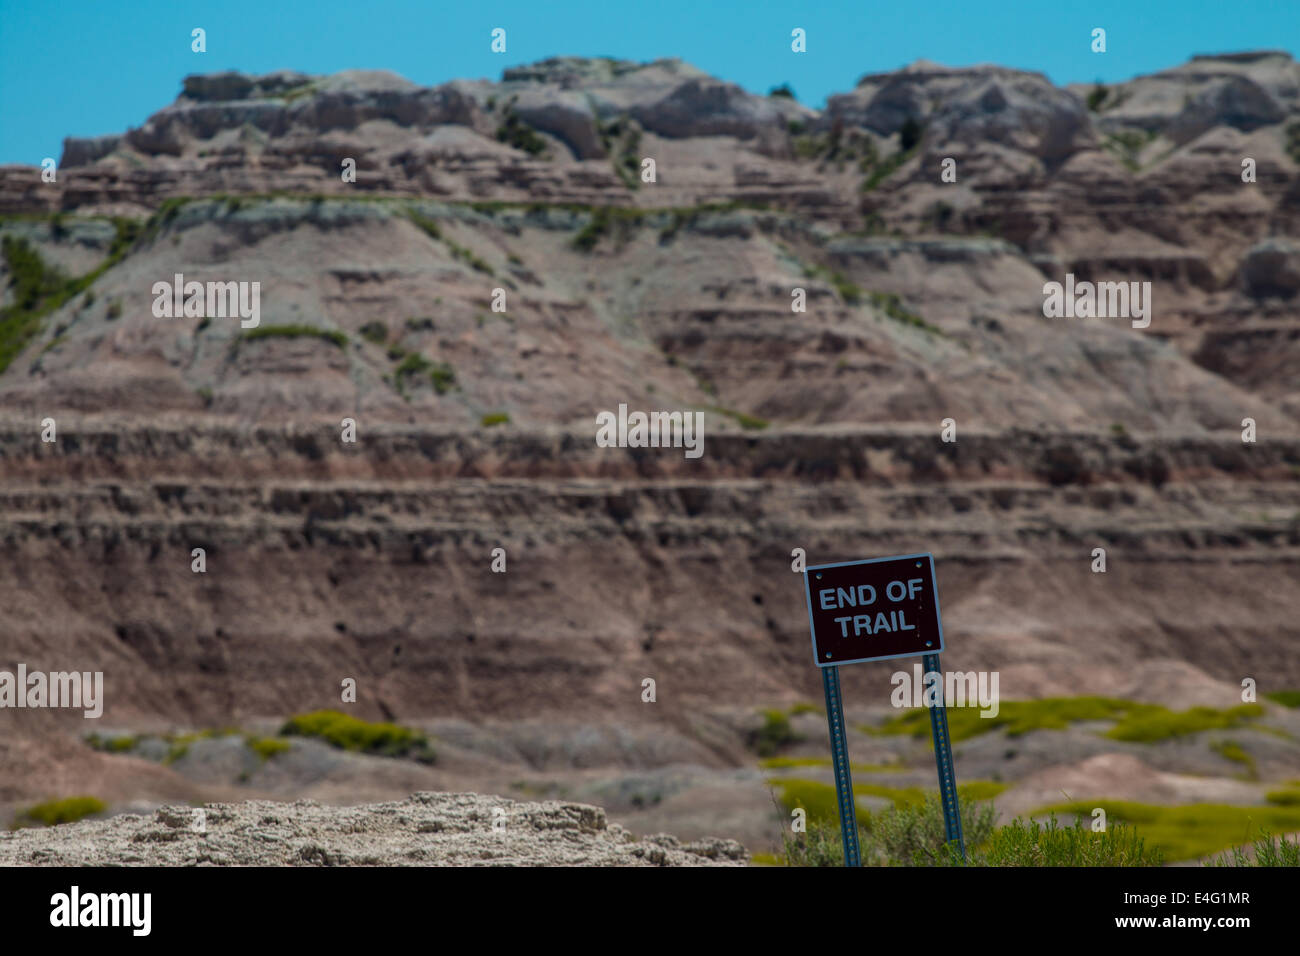 End of trail sign and badlands - Stock Image